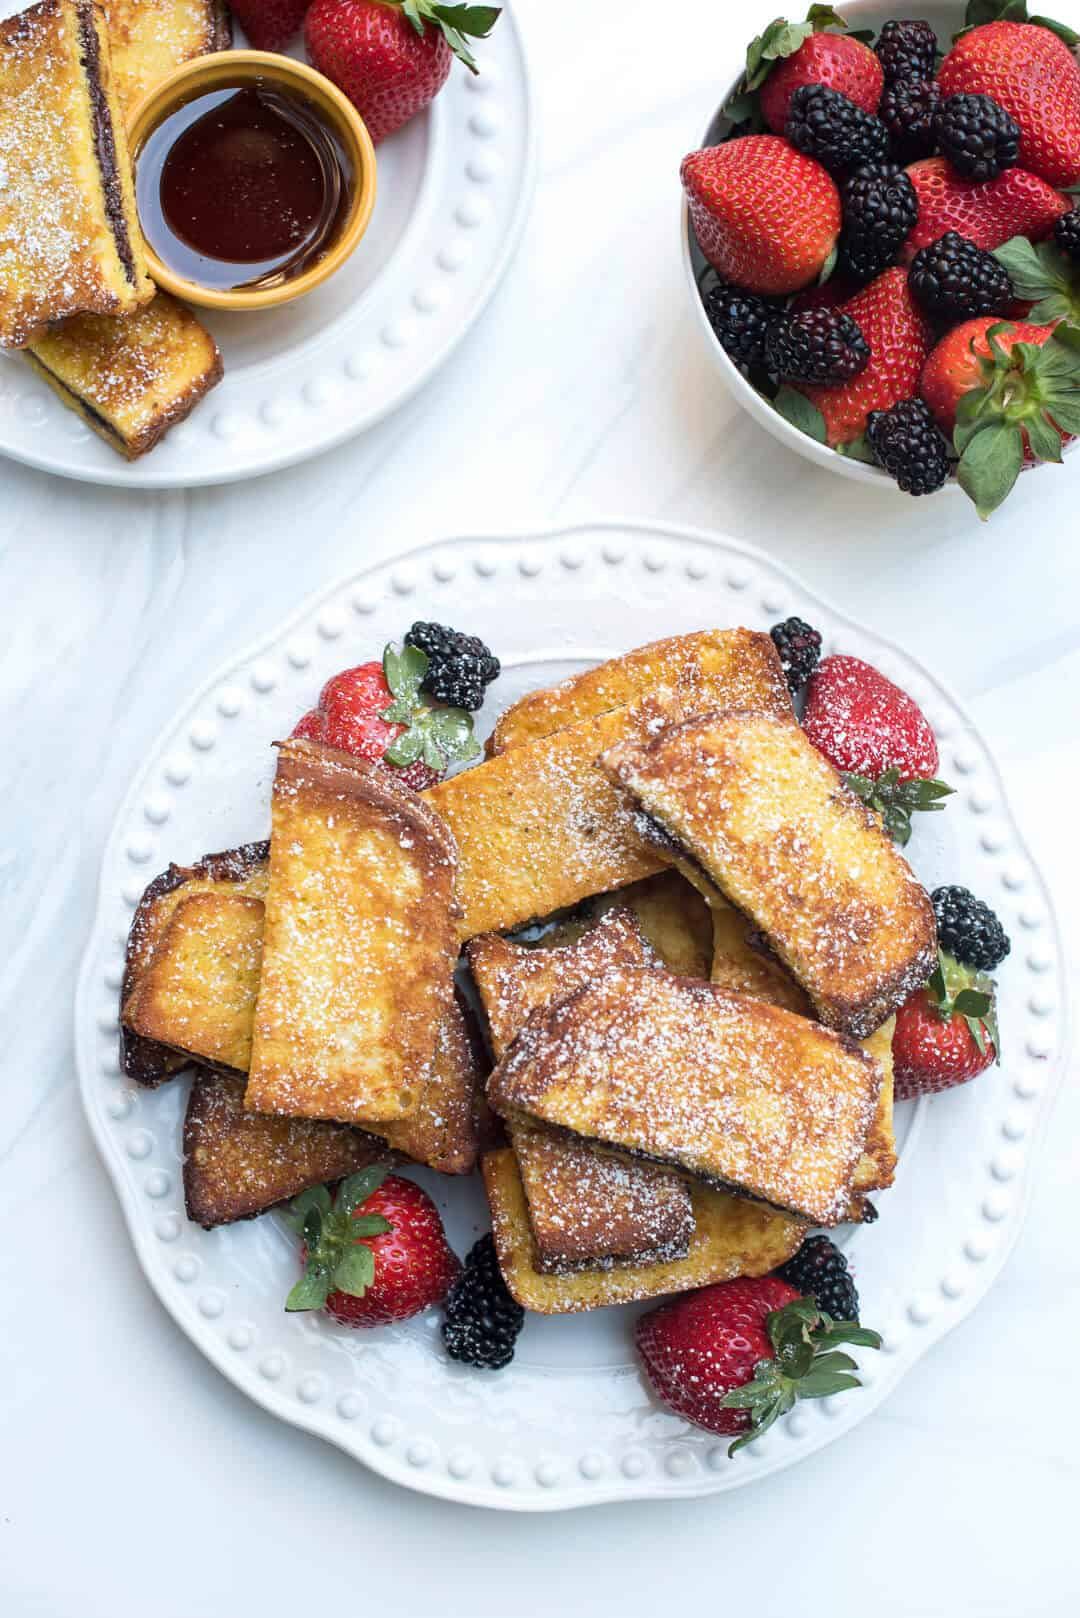 Stacks of Nutella French Toast Sticks with a side of berries.